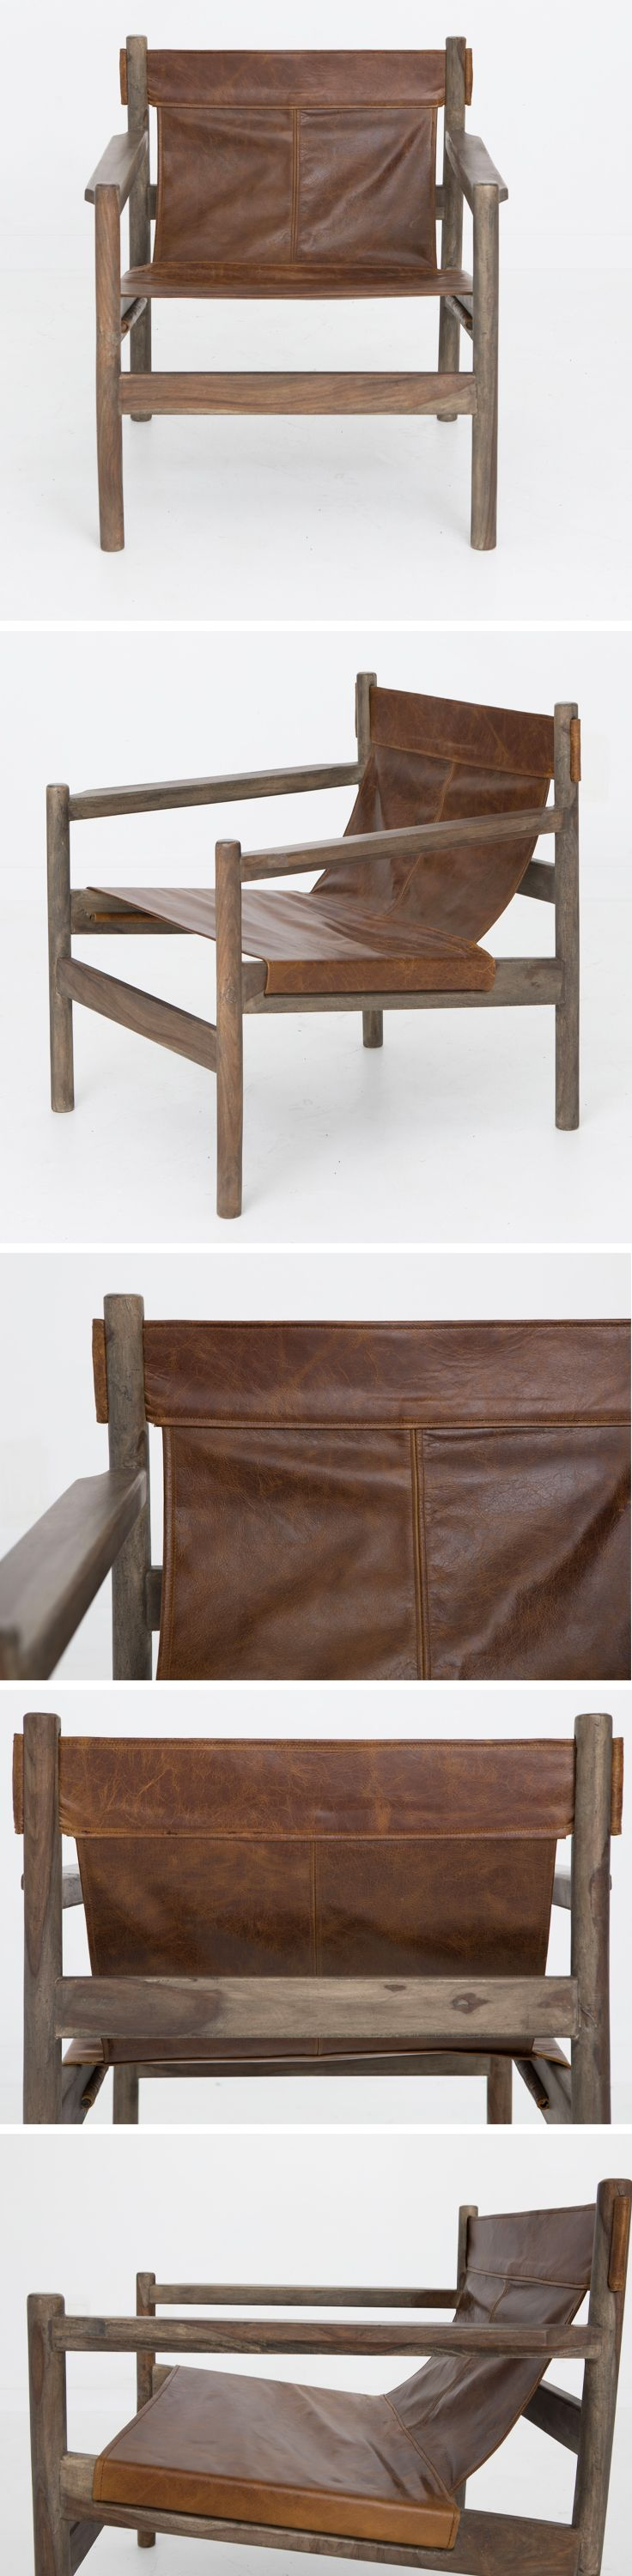 Best 25 Brown leather chairs ideas on Pinterest